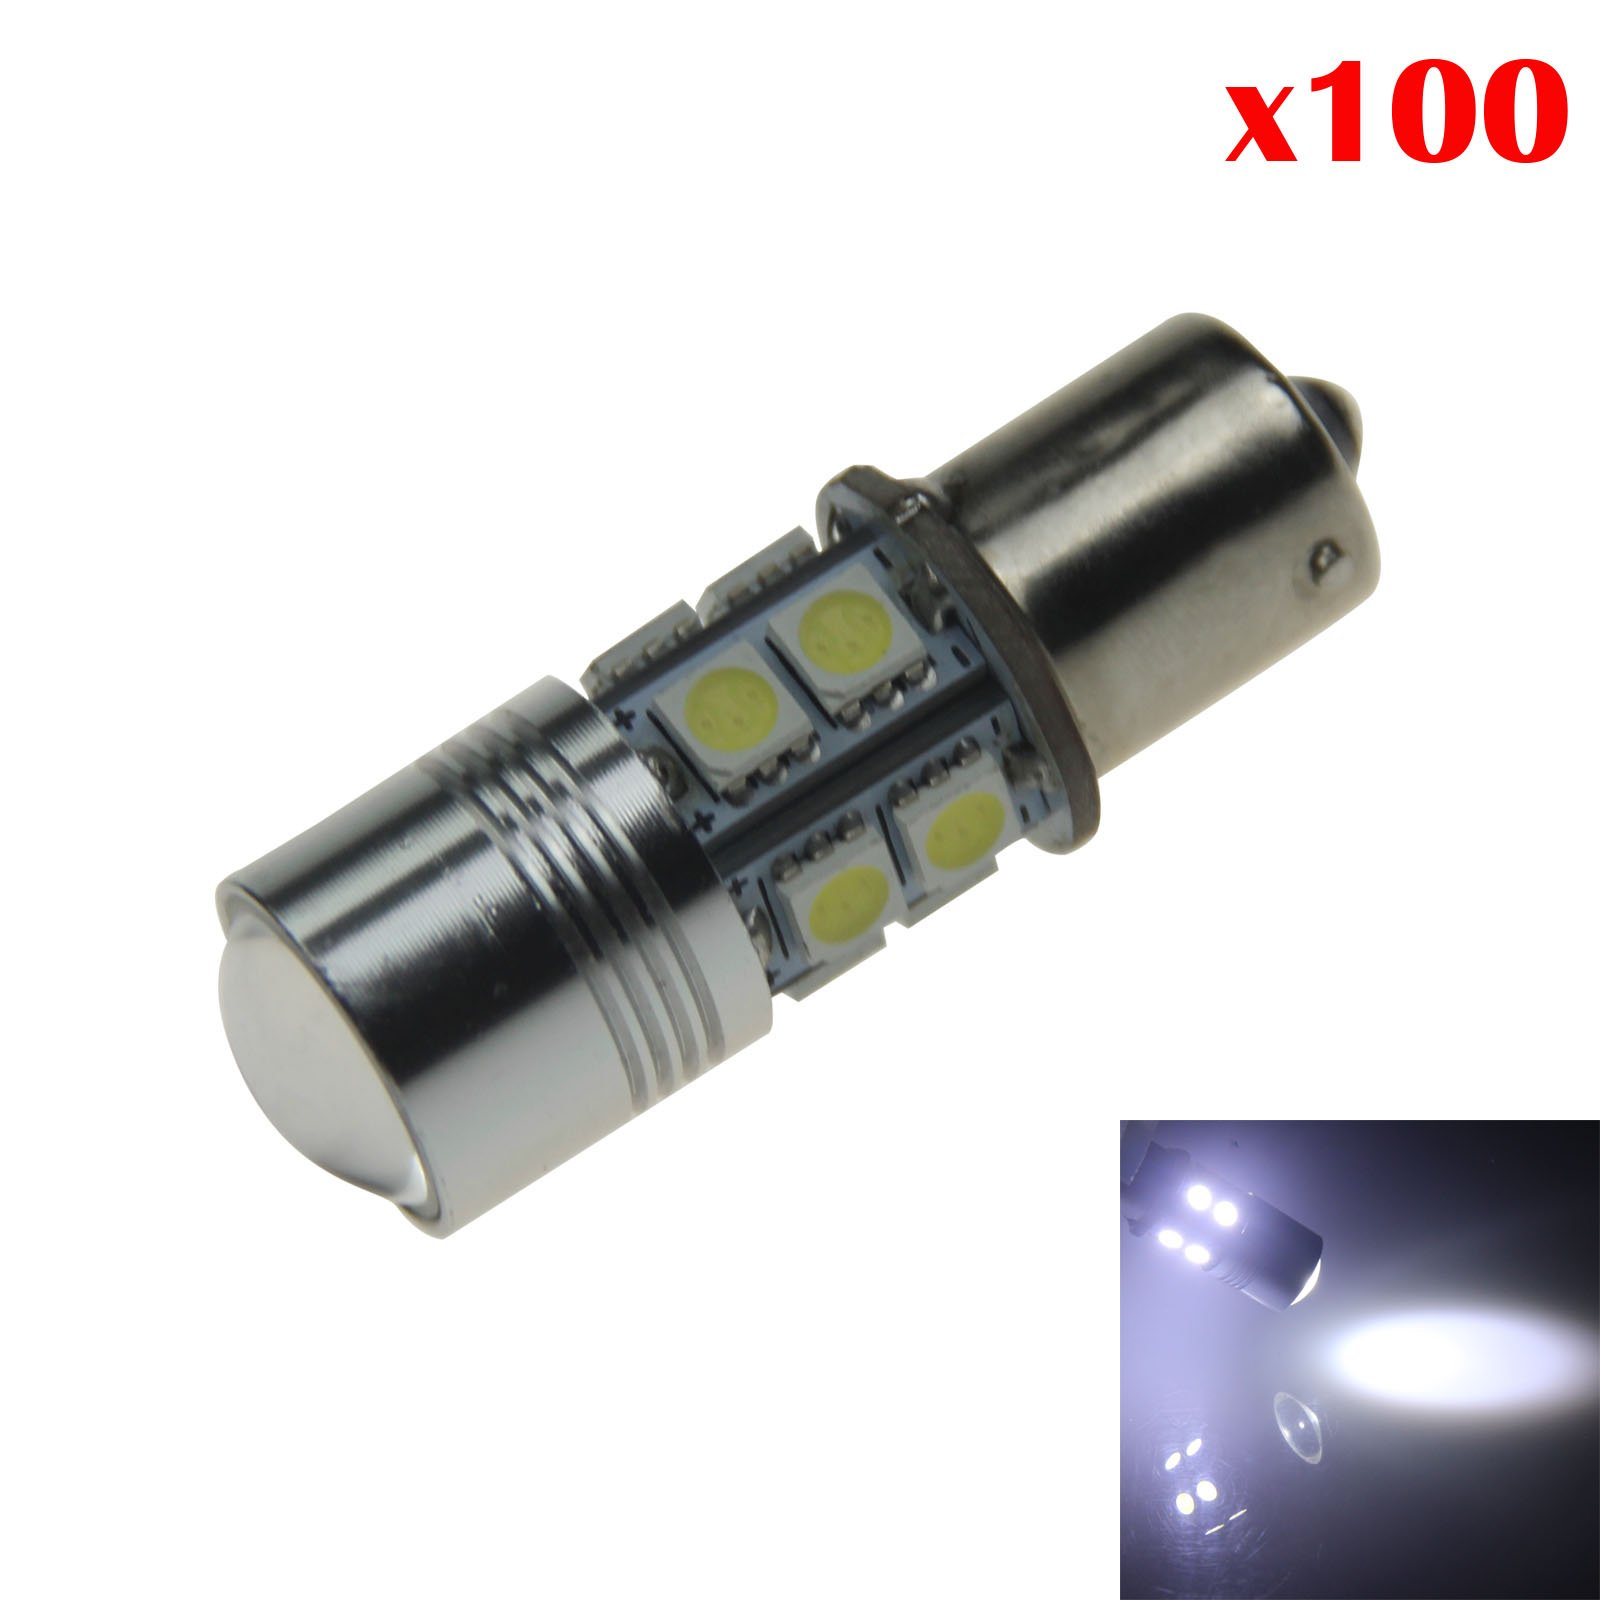 ZHANSHENZHEN White Car 1156 Camper Light Parking Blub 10 x 5050 SMD + 1 CREE LED 11 Emitters DC 12V 1259 #67 P21W Z20687 (Pack of 100)